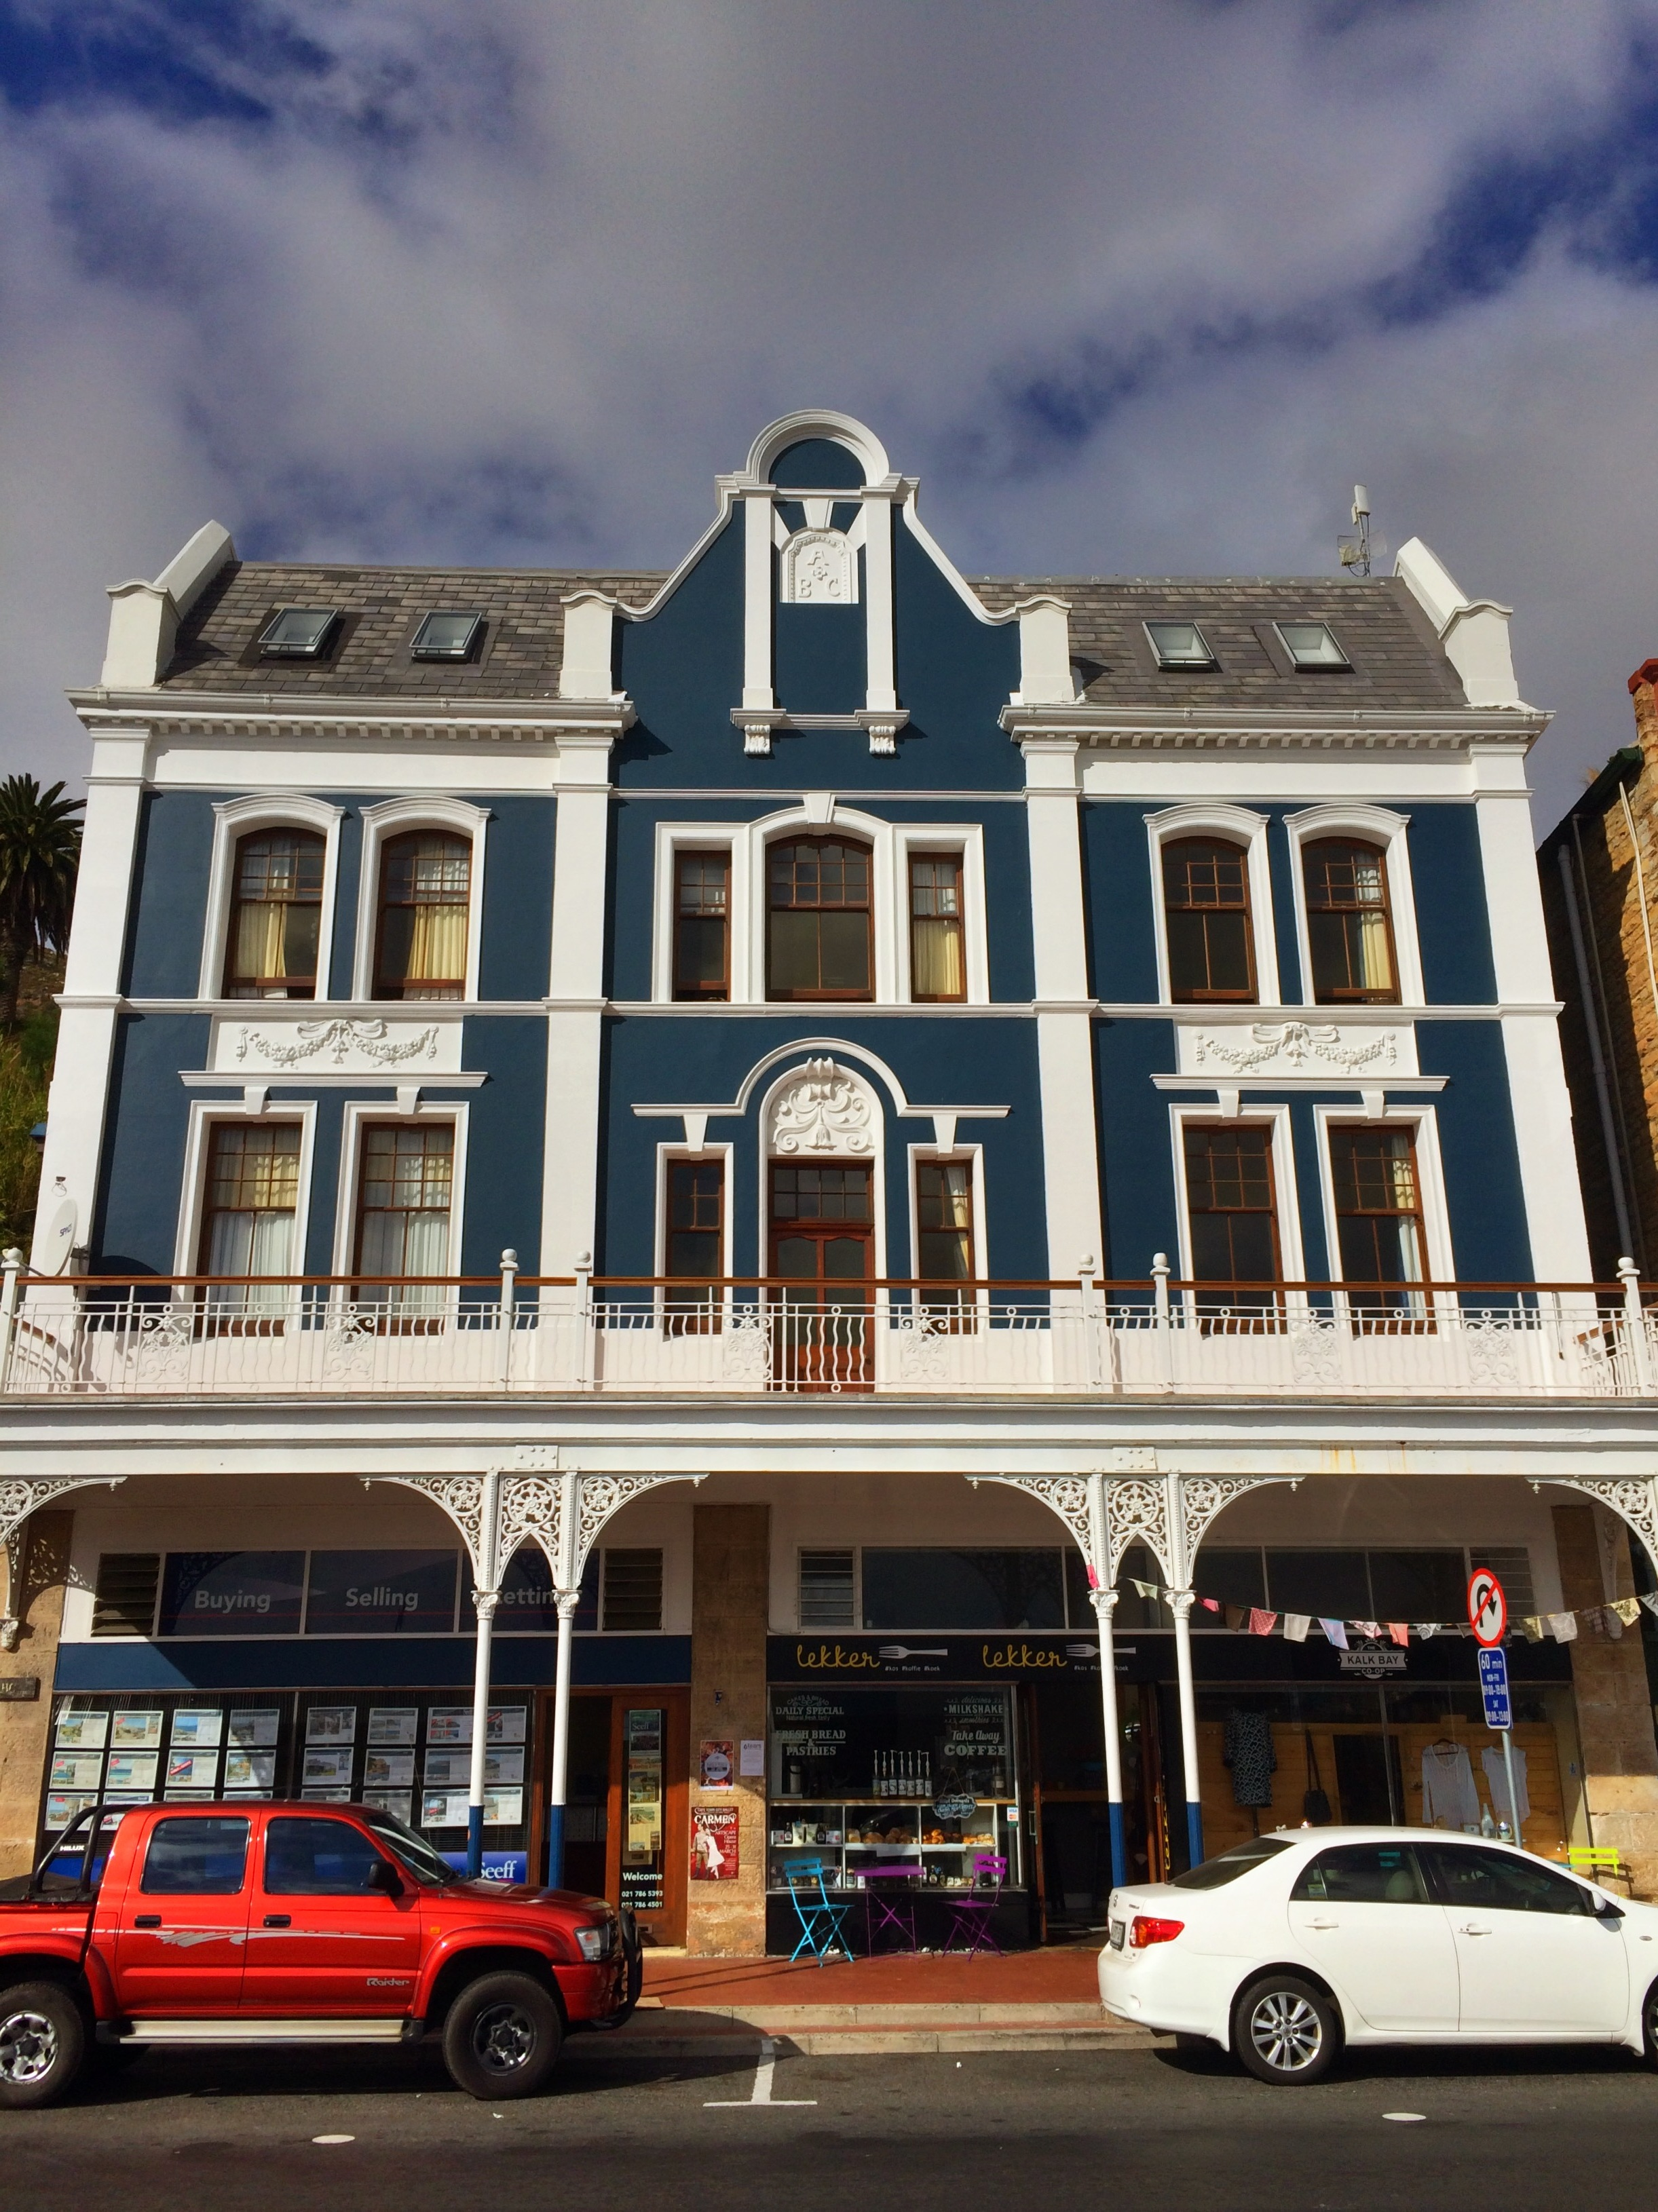 Simon's Town, just south of Cape Town. A quaint little place worth visiting.